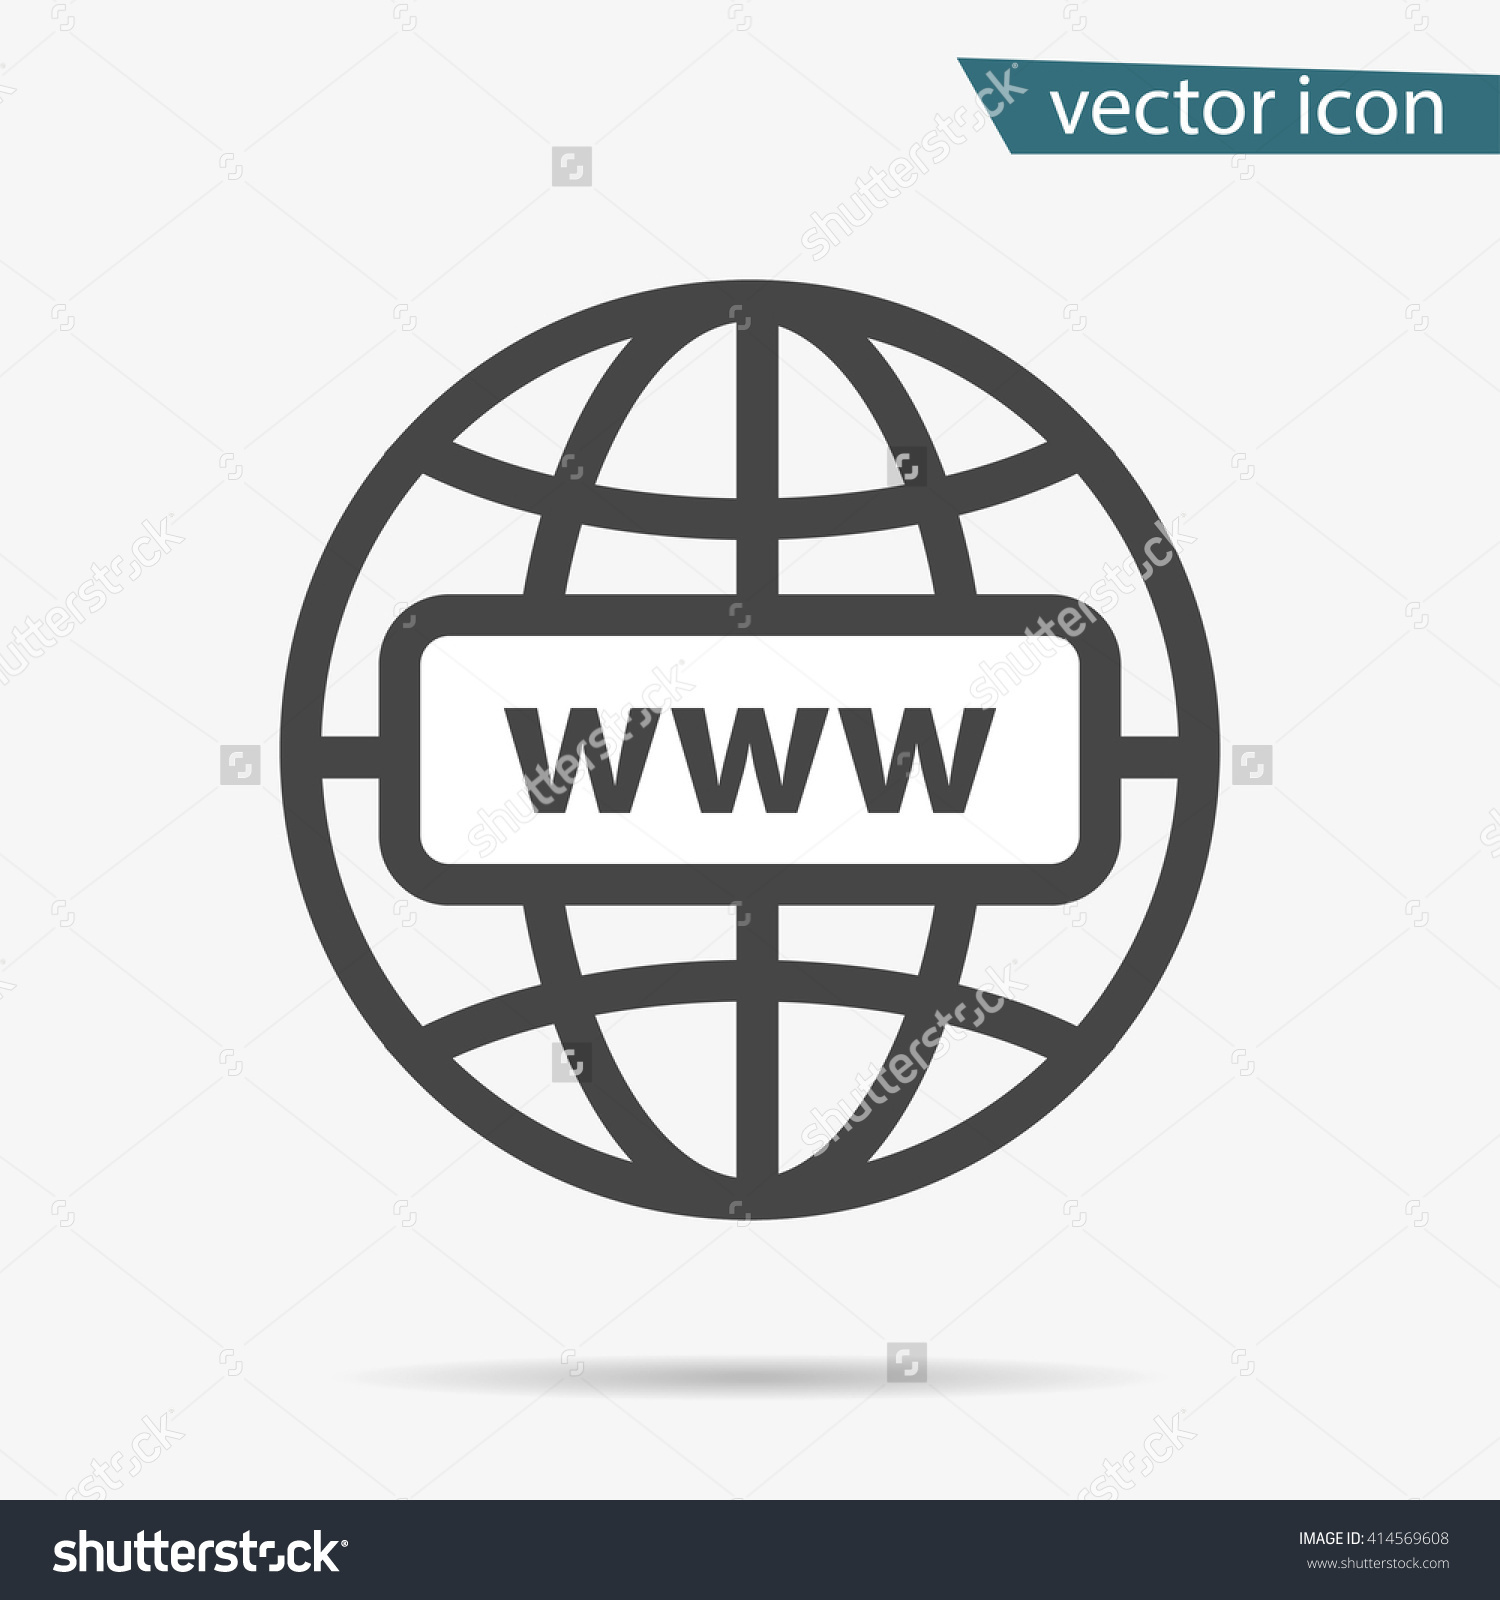 1500x1600 Stock Vector Internet Icon Online Logo Vector Internet Site